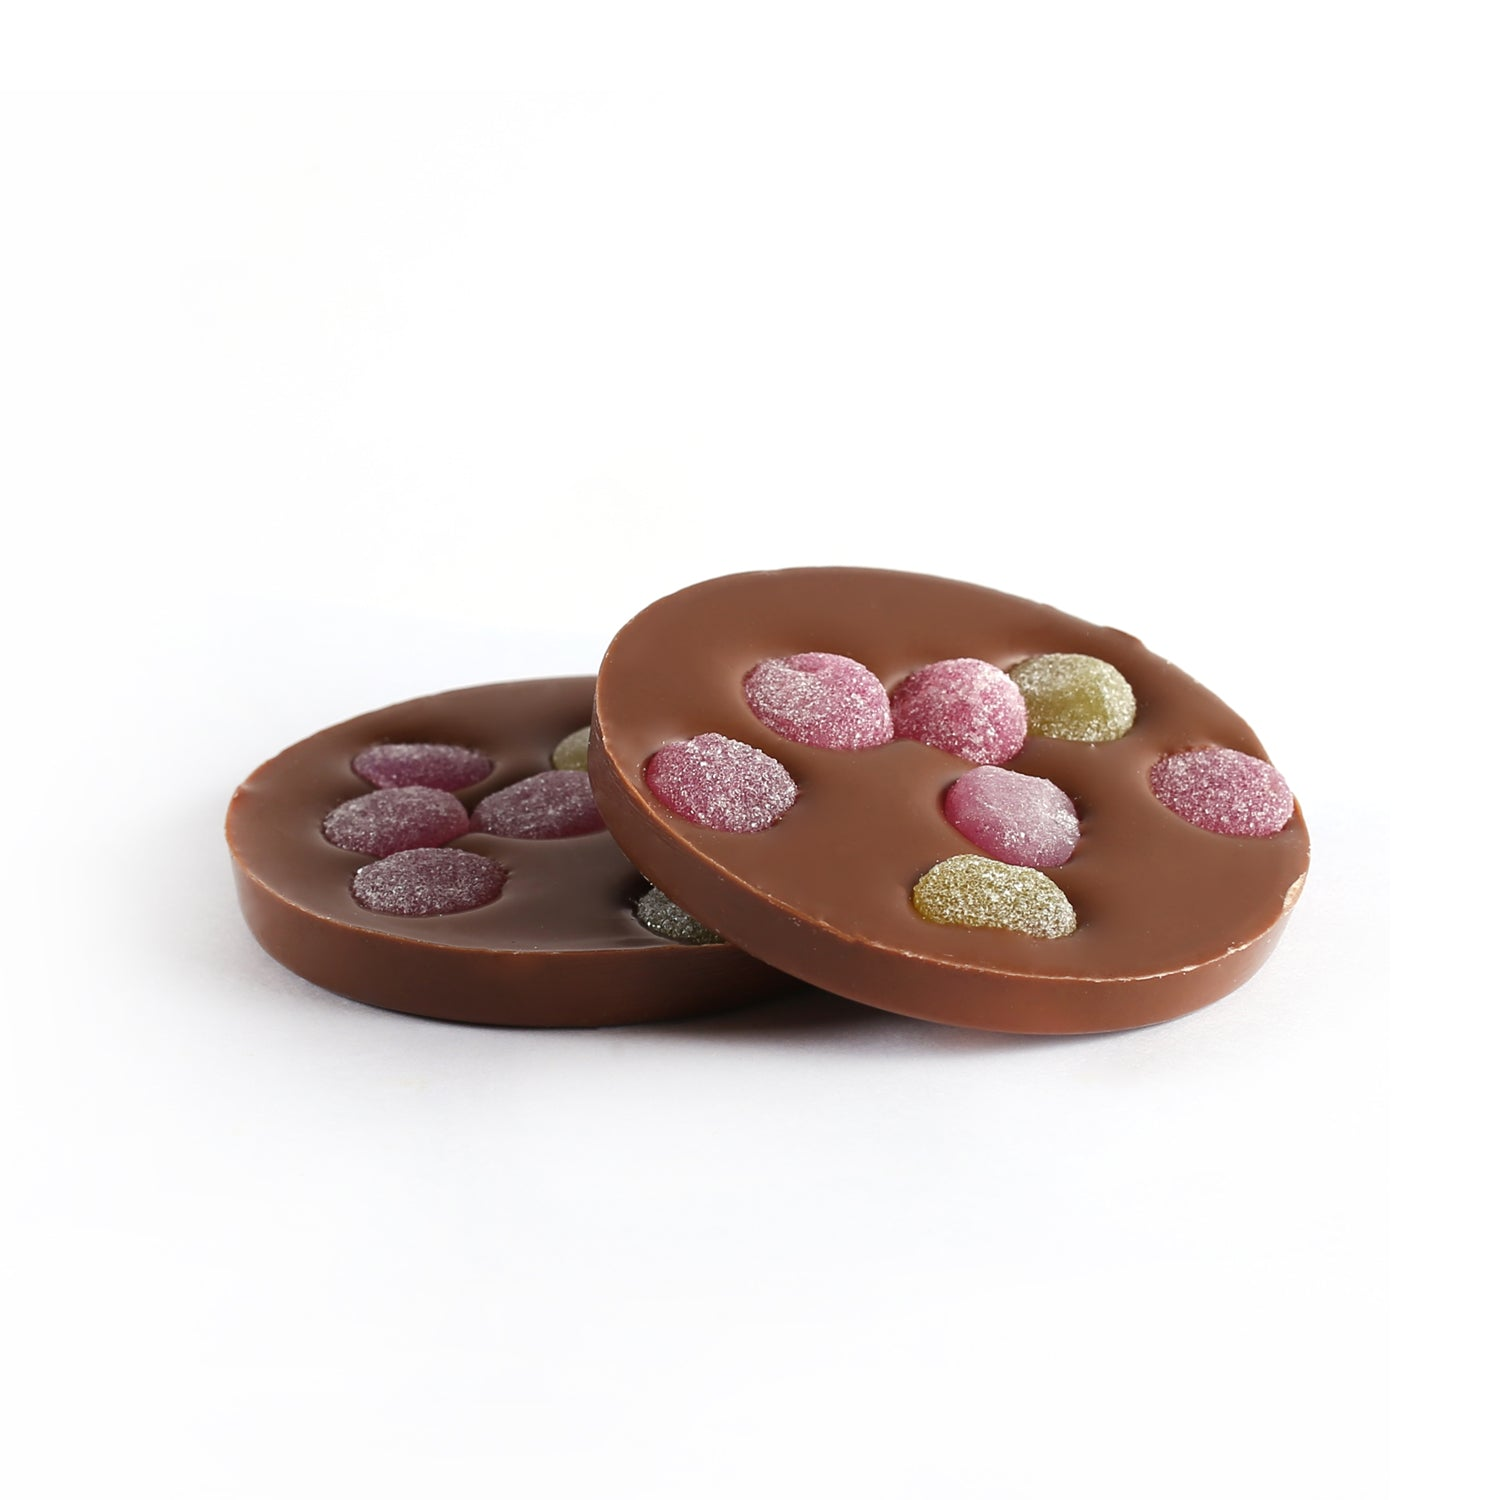 Product photo of 2 milk chocolate disks with gum drop candy